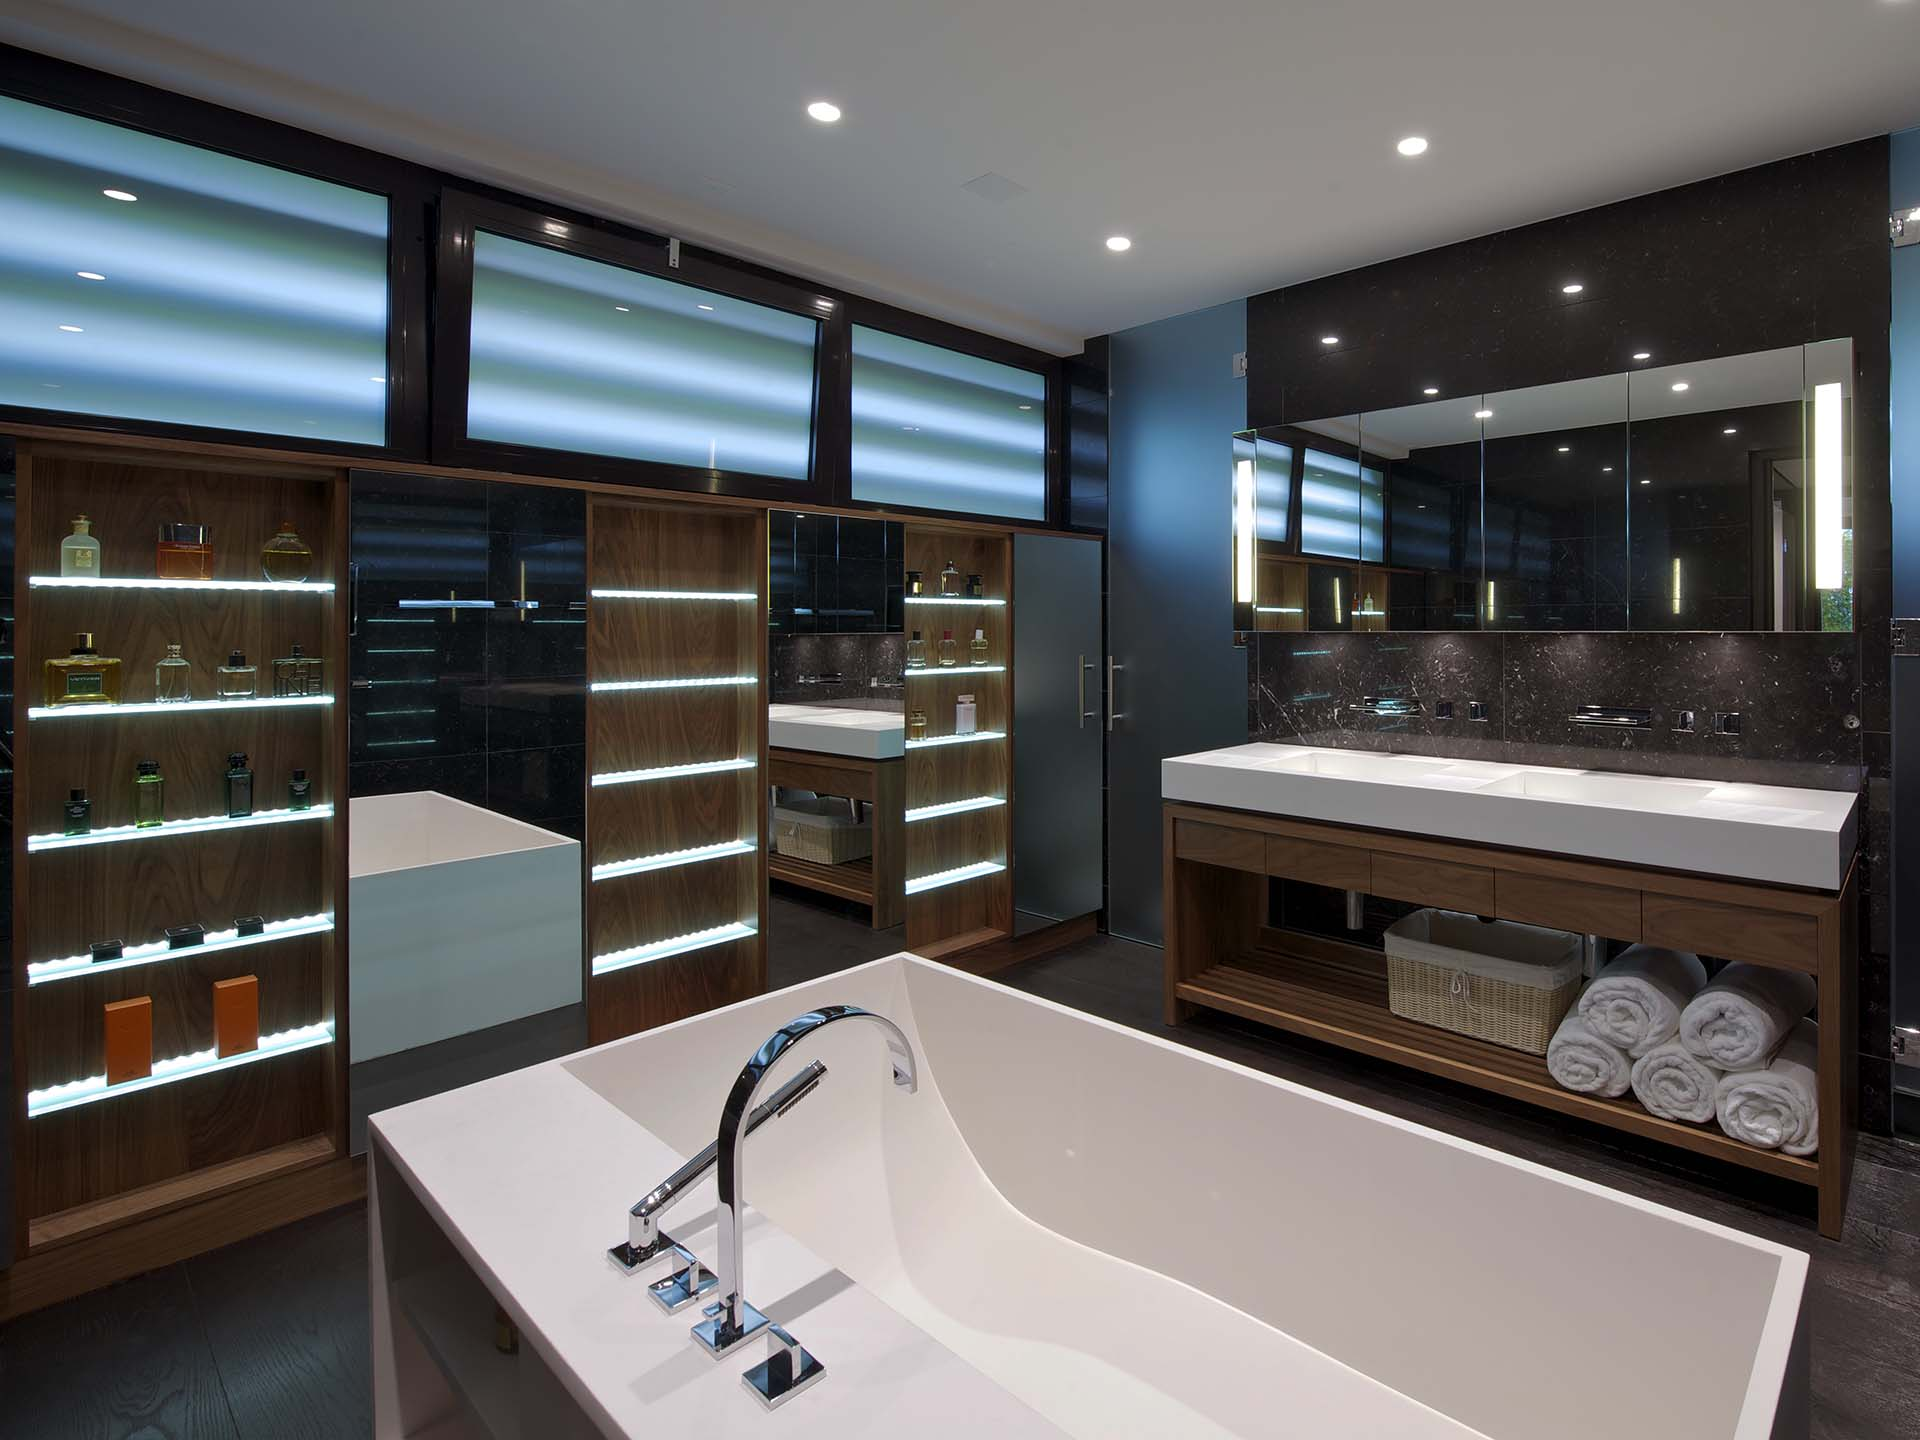 Luxury Contemporary Bathroom Designers London, Uk